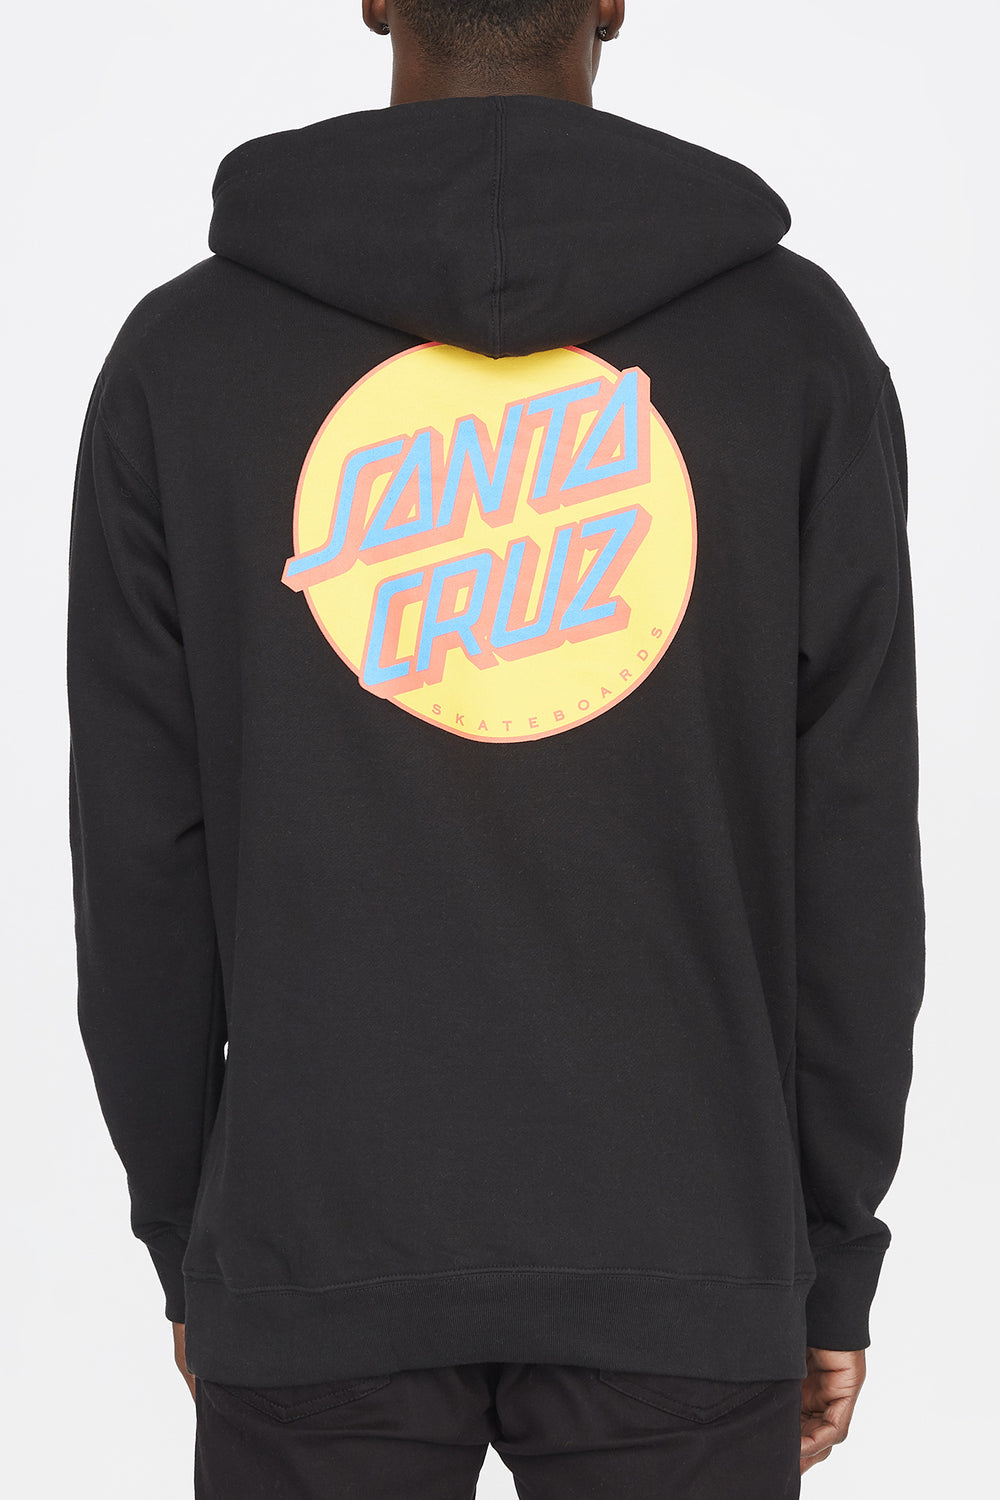 Santa Cruz Mens Other Dot Black Hoodie Black